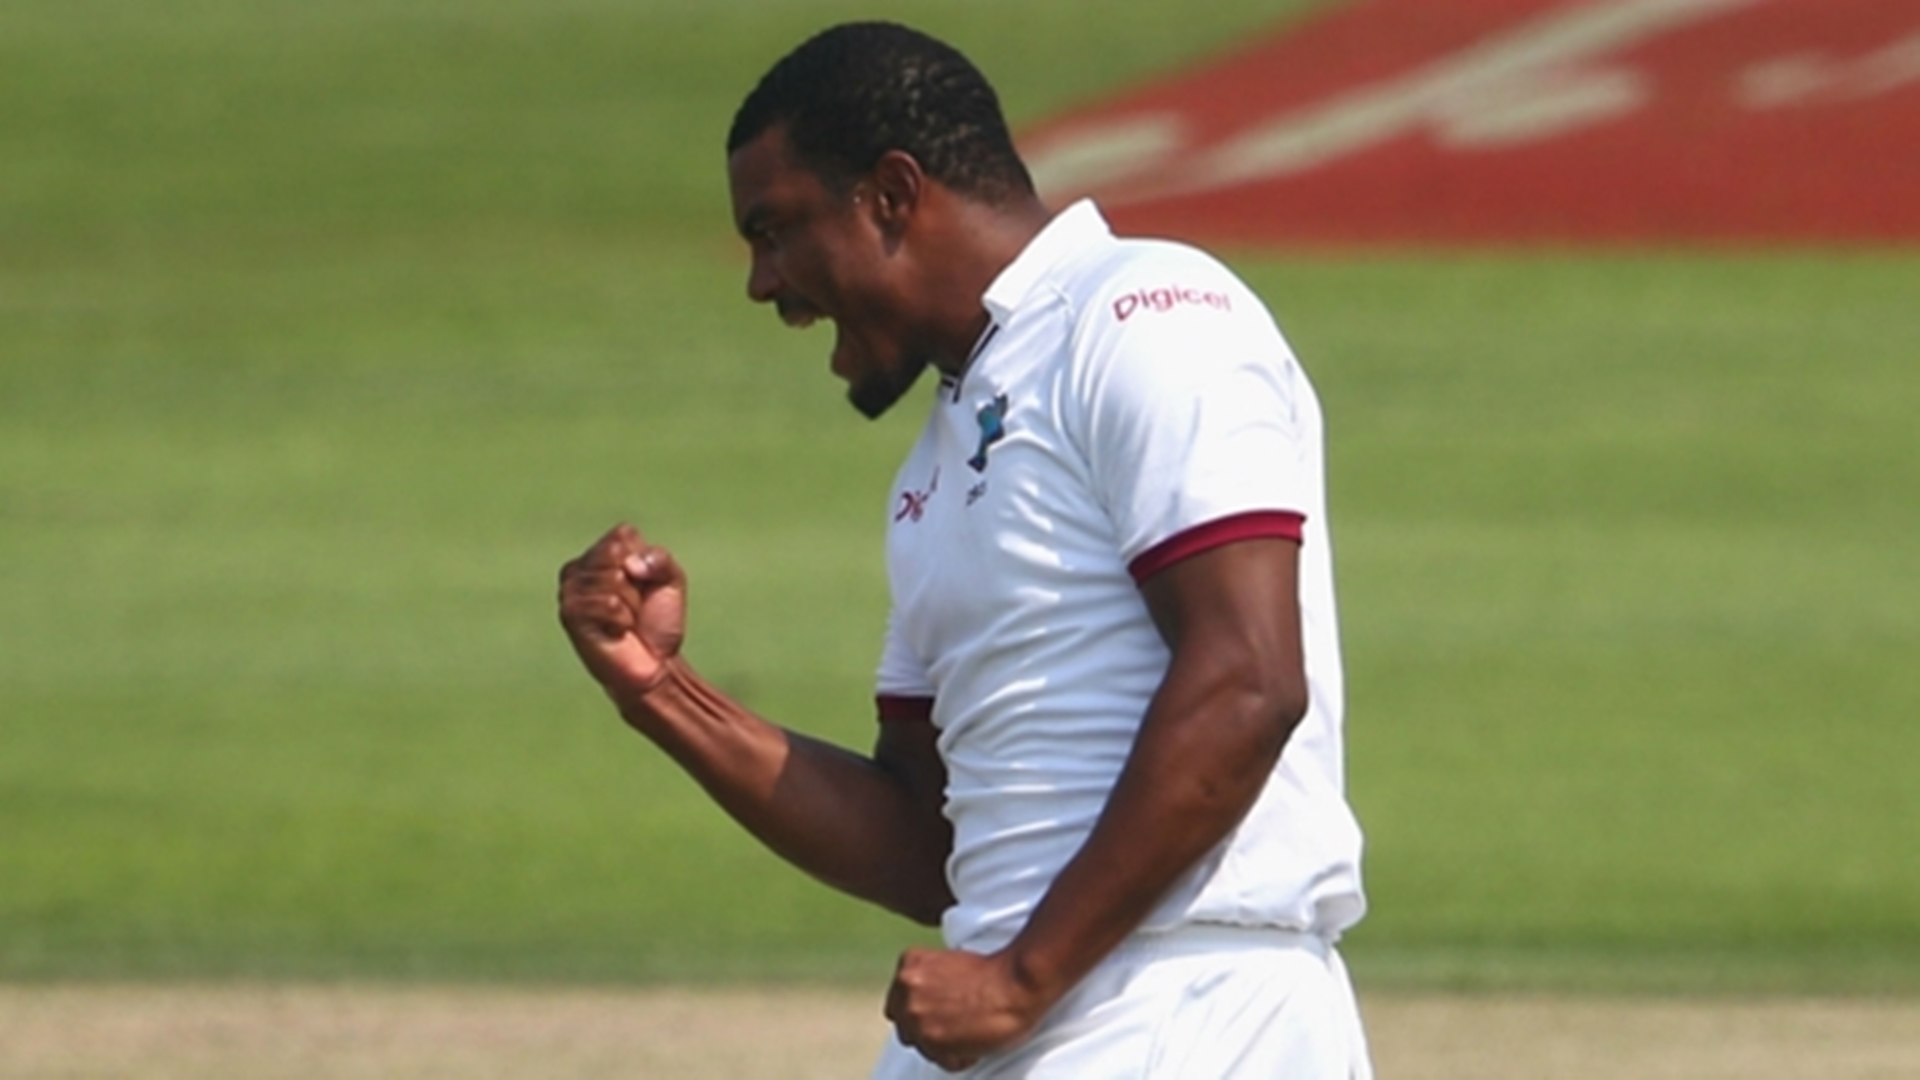 West Indies pacer Shannon Gabriel celebrates a wicket during the final day of the second Test against Pakistan in Barbados on Thursday. West Indies won by 106 runs to level the series.